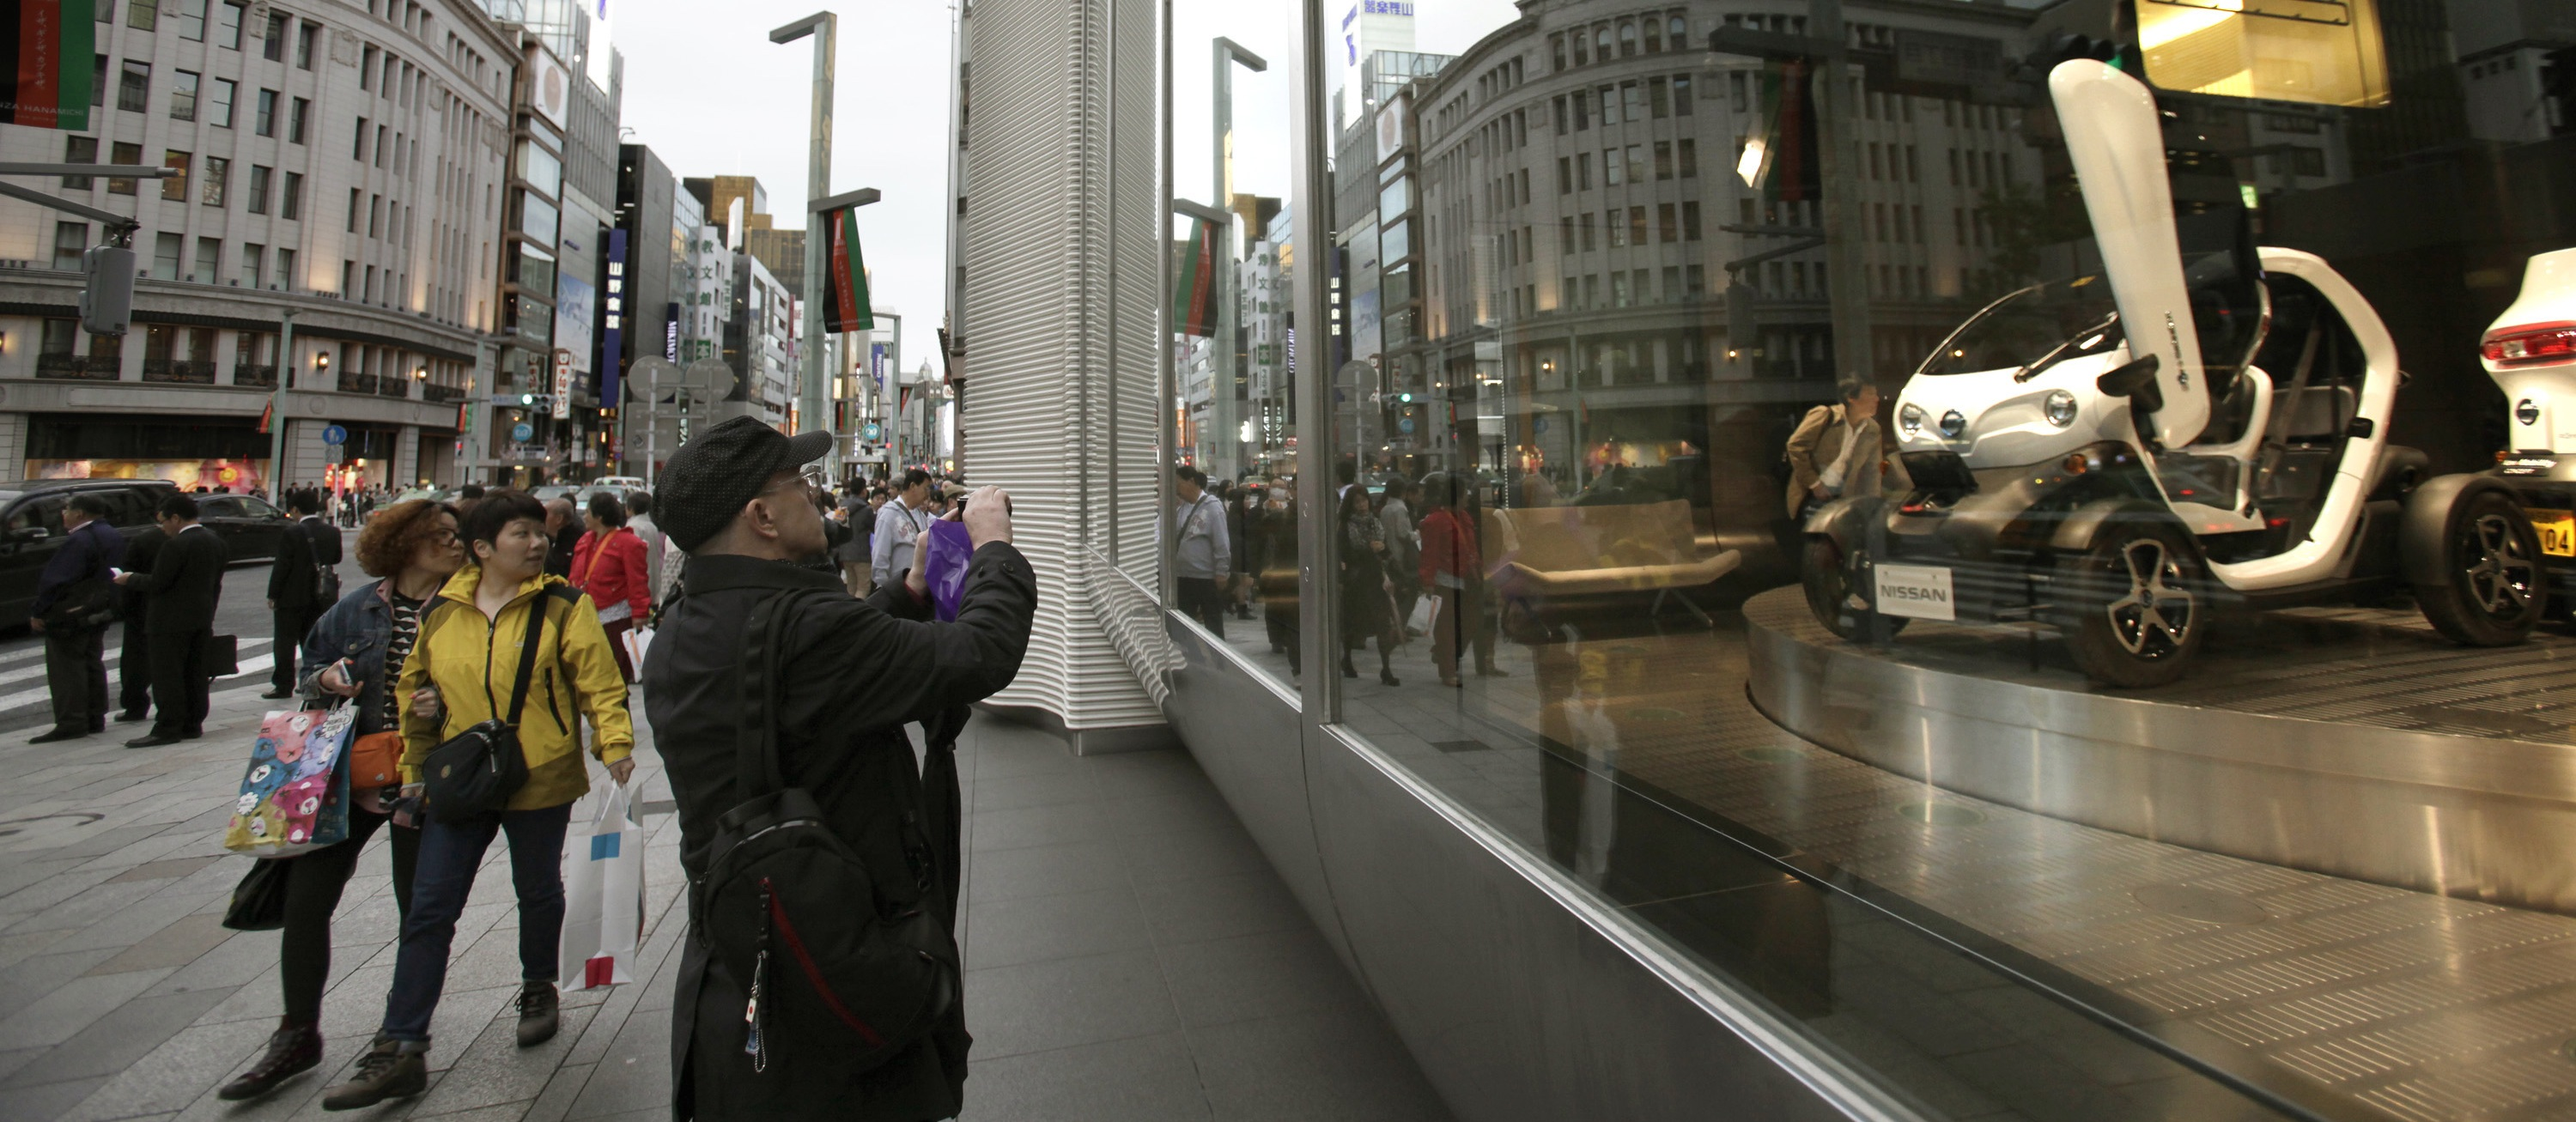 A man takes a picture of NISSAN New Mobility CONCEPT car in Nissan showroom at Ginza shopping district in Tokyo, Wednesday, April 3, 2013. (AP Photo/Shizuo Kambayashi)